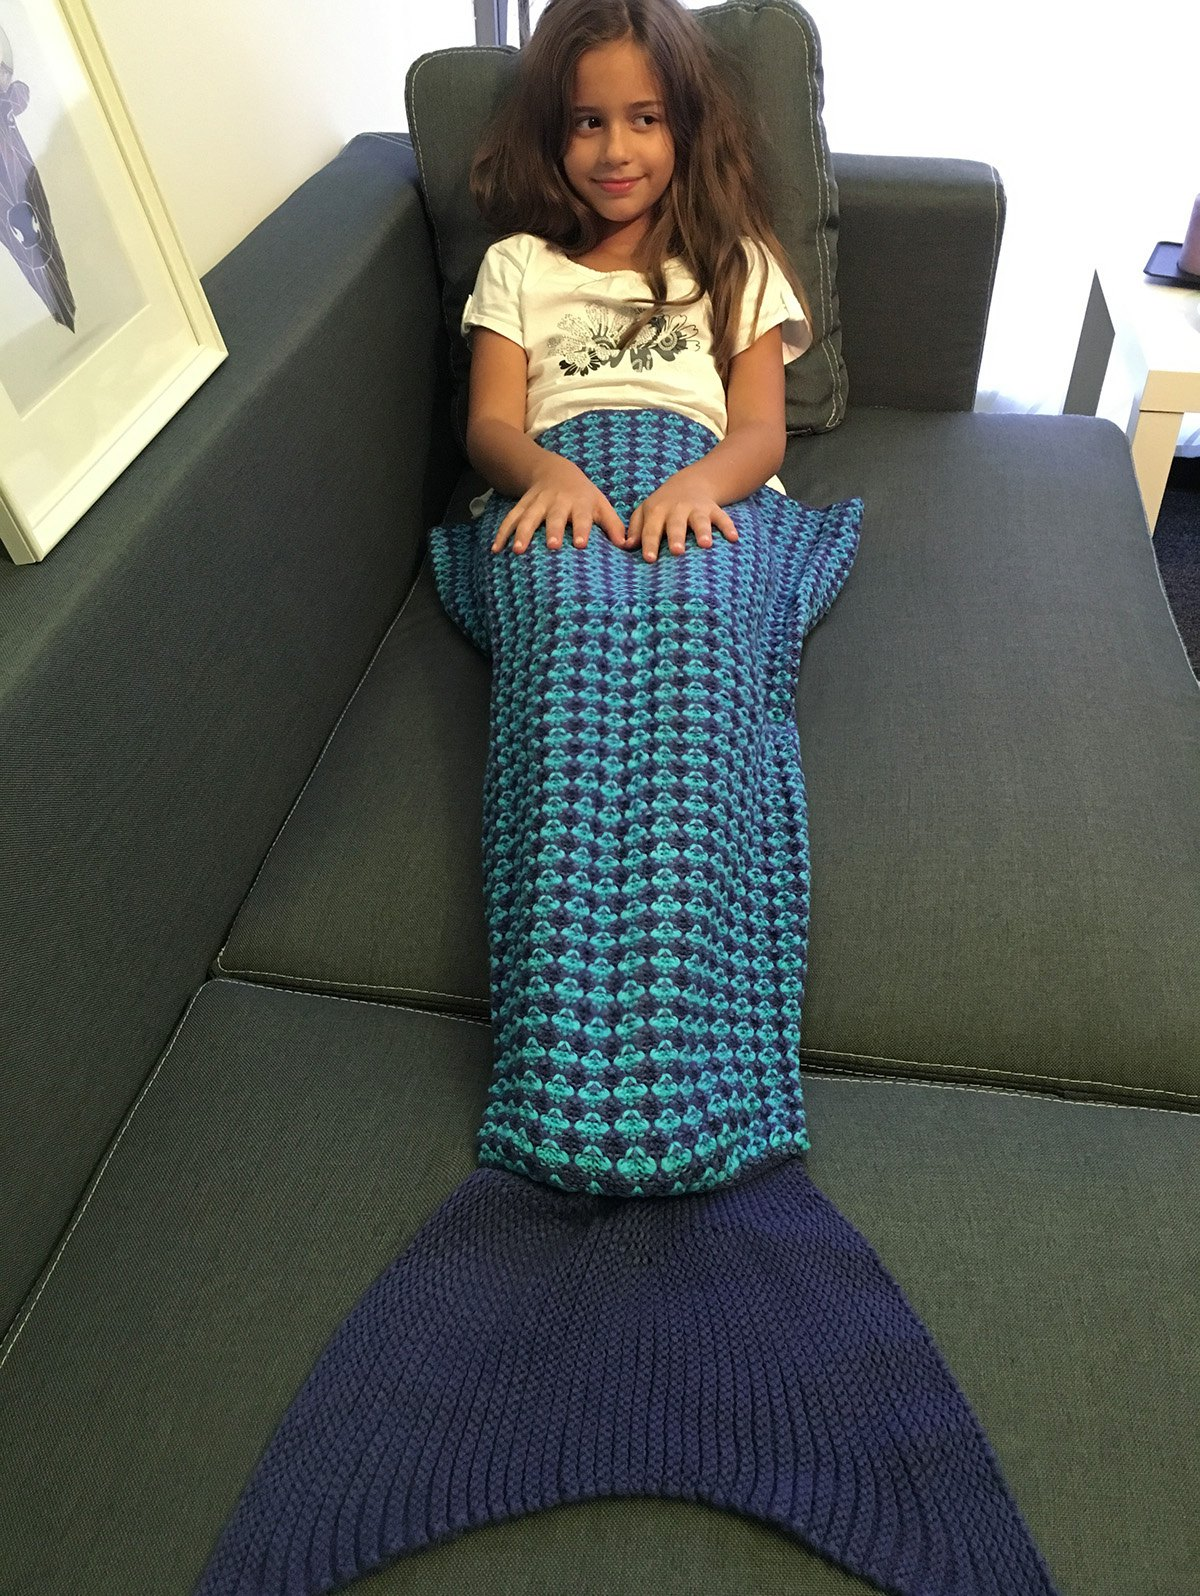 Crochet Knitting Stripe Pattern Kid's Fish Tail Design Blanket 500 knitting pattern world of xiao lai qian zhi